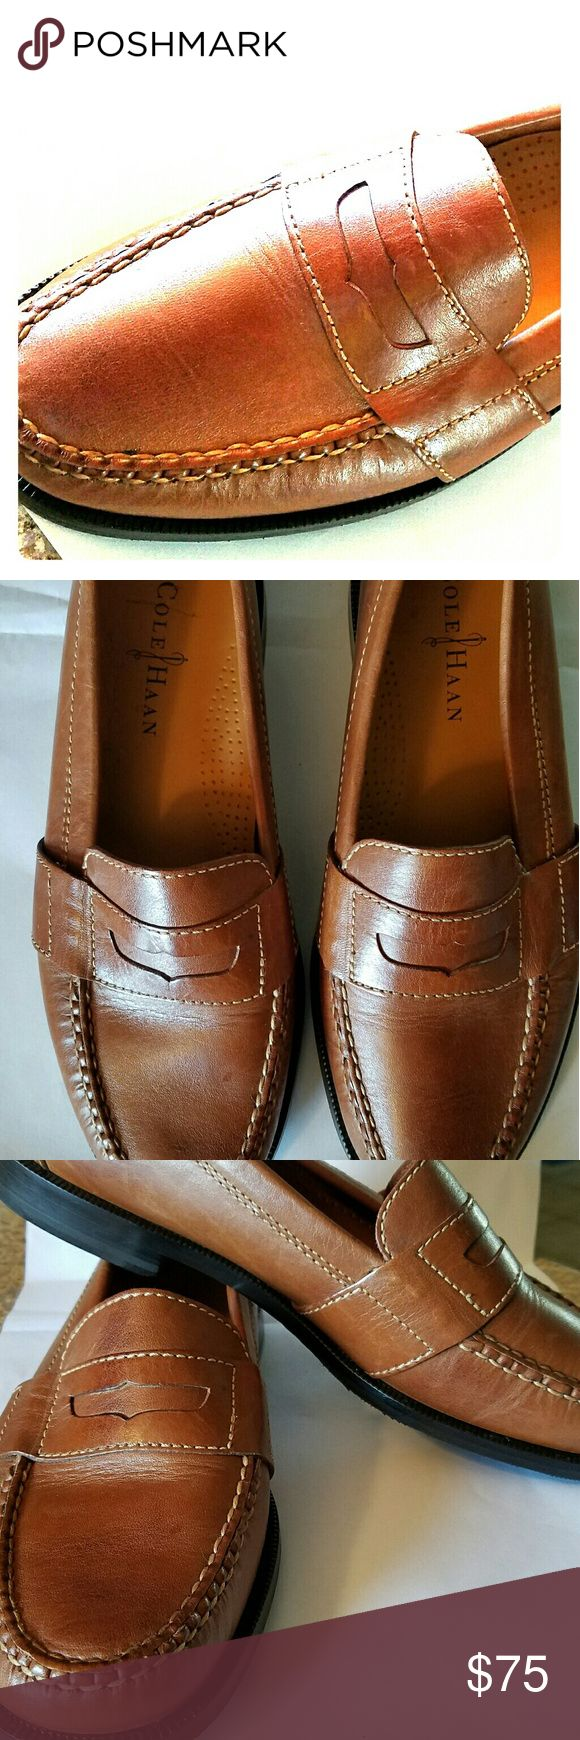 Used Cole Haan Mens Shoes Images Ideas About Designer Loafers On